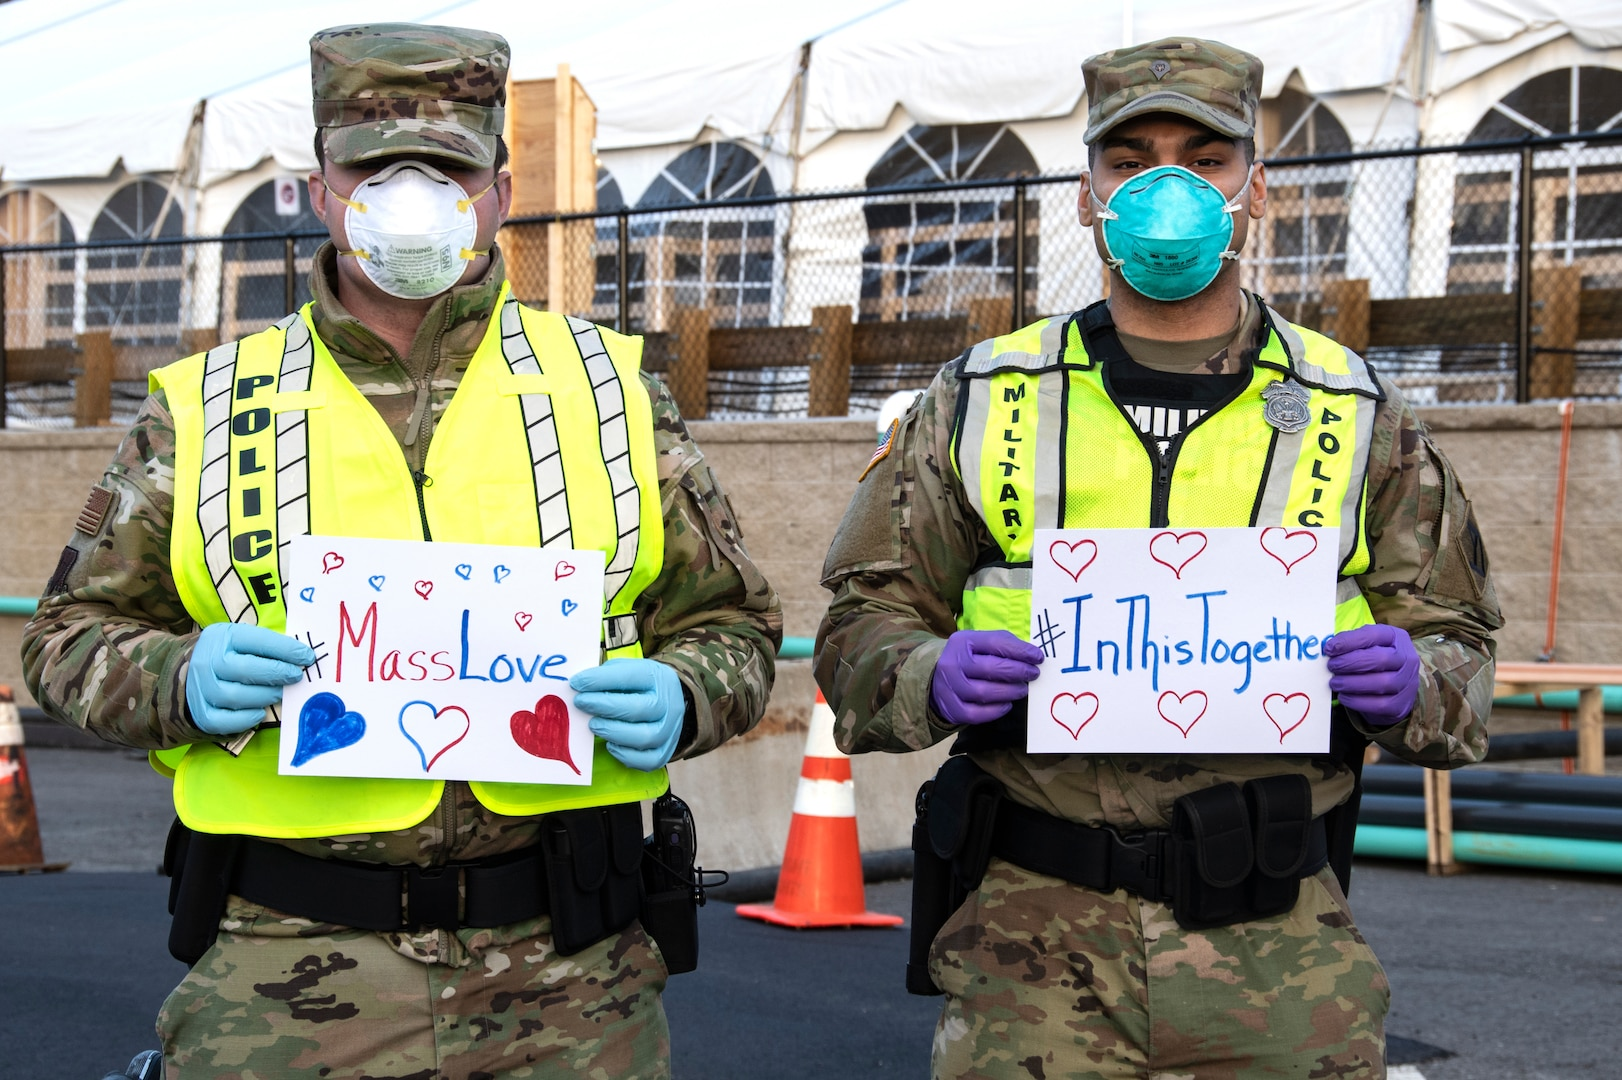 Airmen and Soldiers of the Massachusetts National Guard take a photo as they respond together to help their communities during the COVID-19 pandemic. Security Forces Airmen from the 104th Fighter Wing, Barnes Air National Guard Base, and Soldiers with the 747th Military Police Company, Massachusetts Army National Guard, are providing security for testing sites and shelters for the homeless who may have contracted the coronavirus.